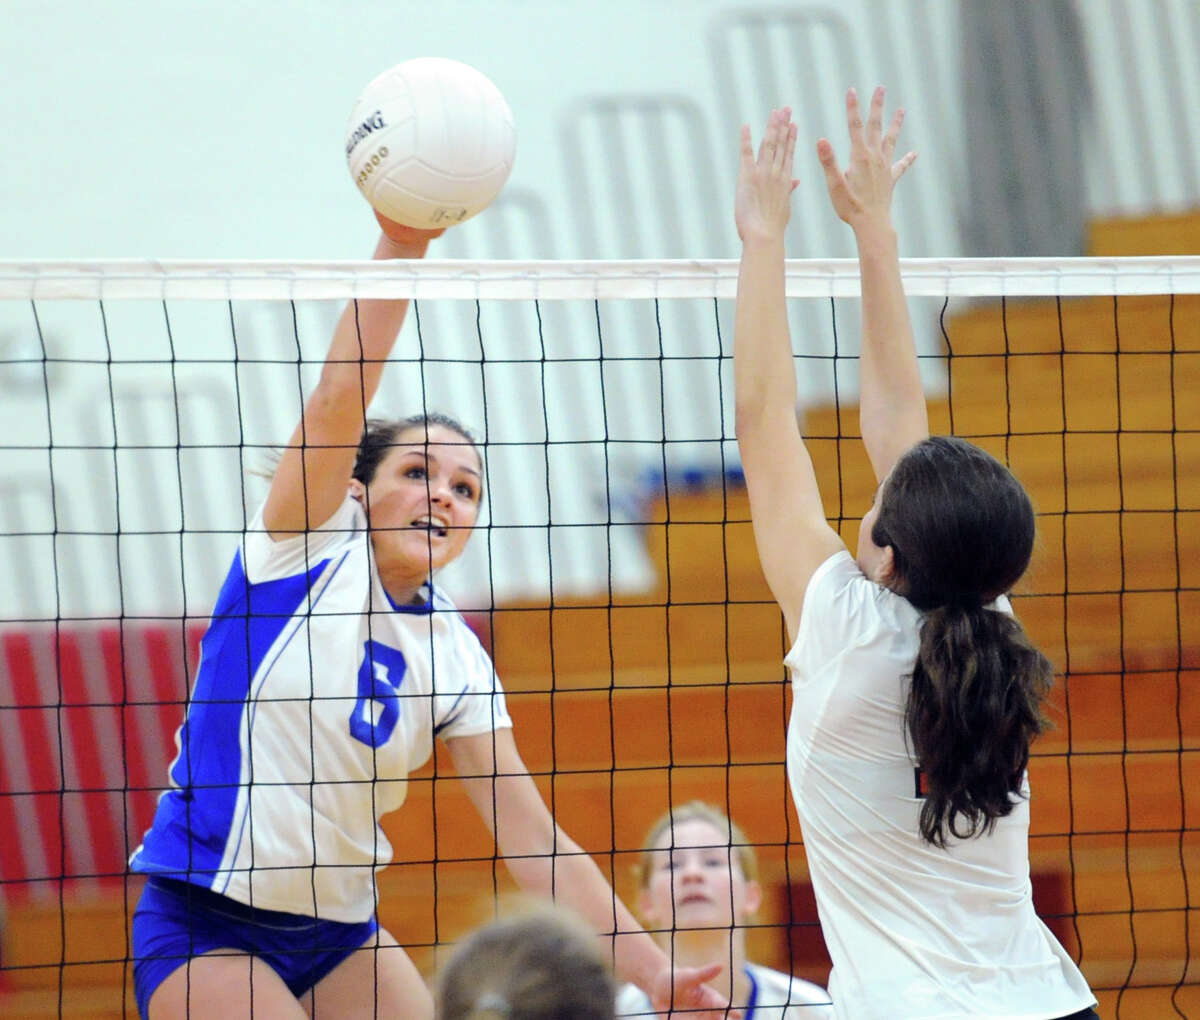 At left, Sami Huff (#6) of Darien scores a point on a spike during the girls high school volleyball between Greenwich High School and Darien High School at Greenwich, Tuesday, Oct. 14, 2014. Darien won the match over Greenwich, 3-0.